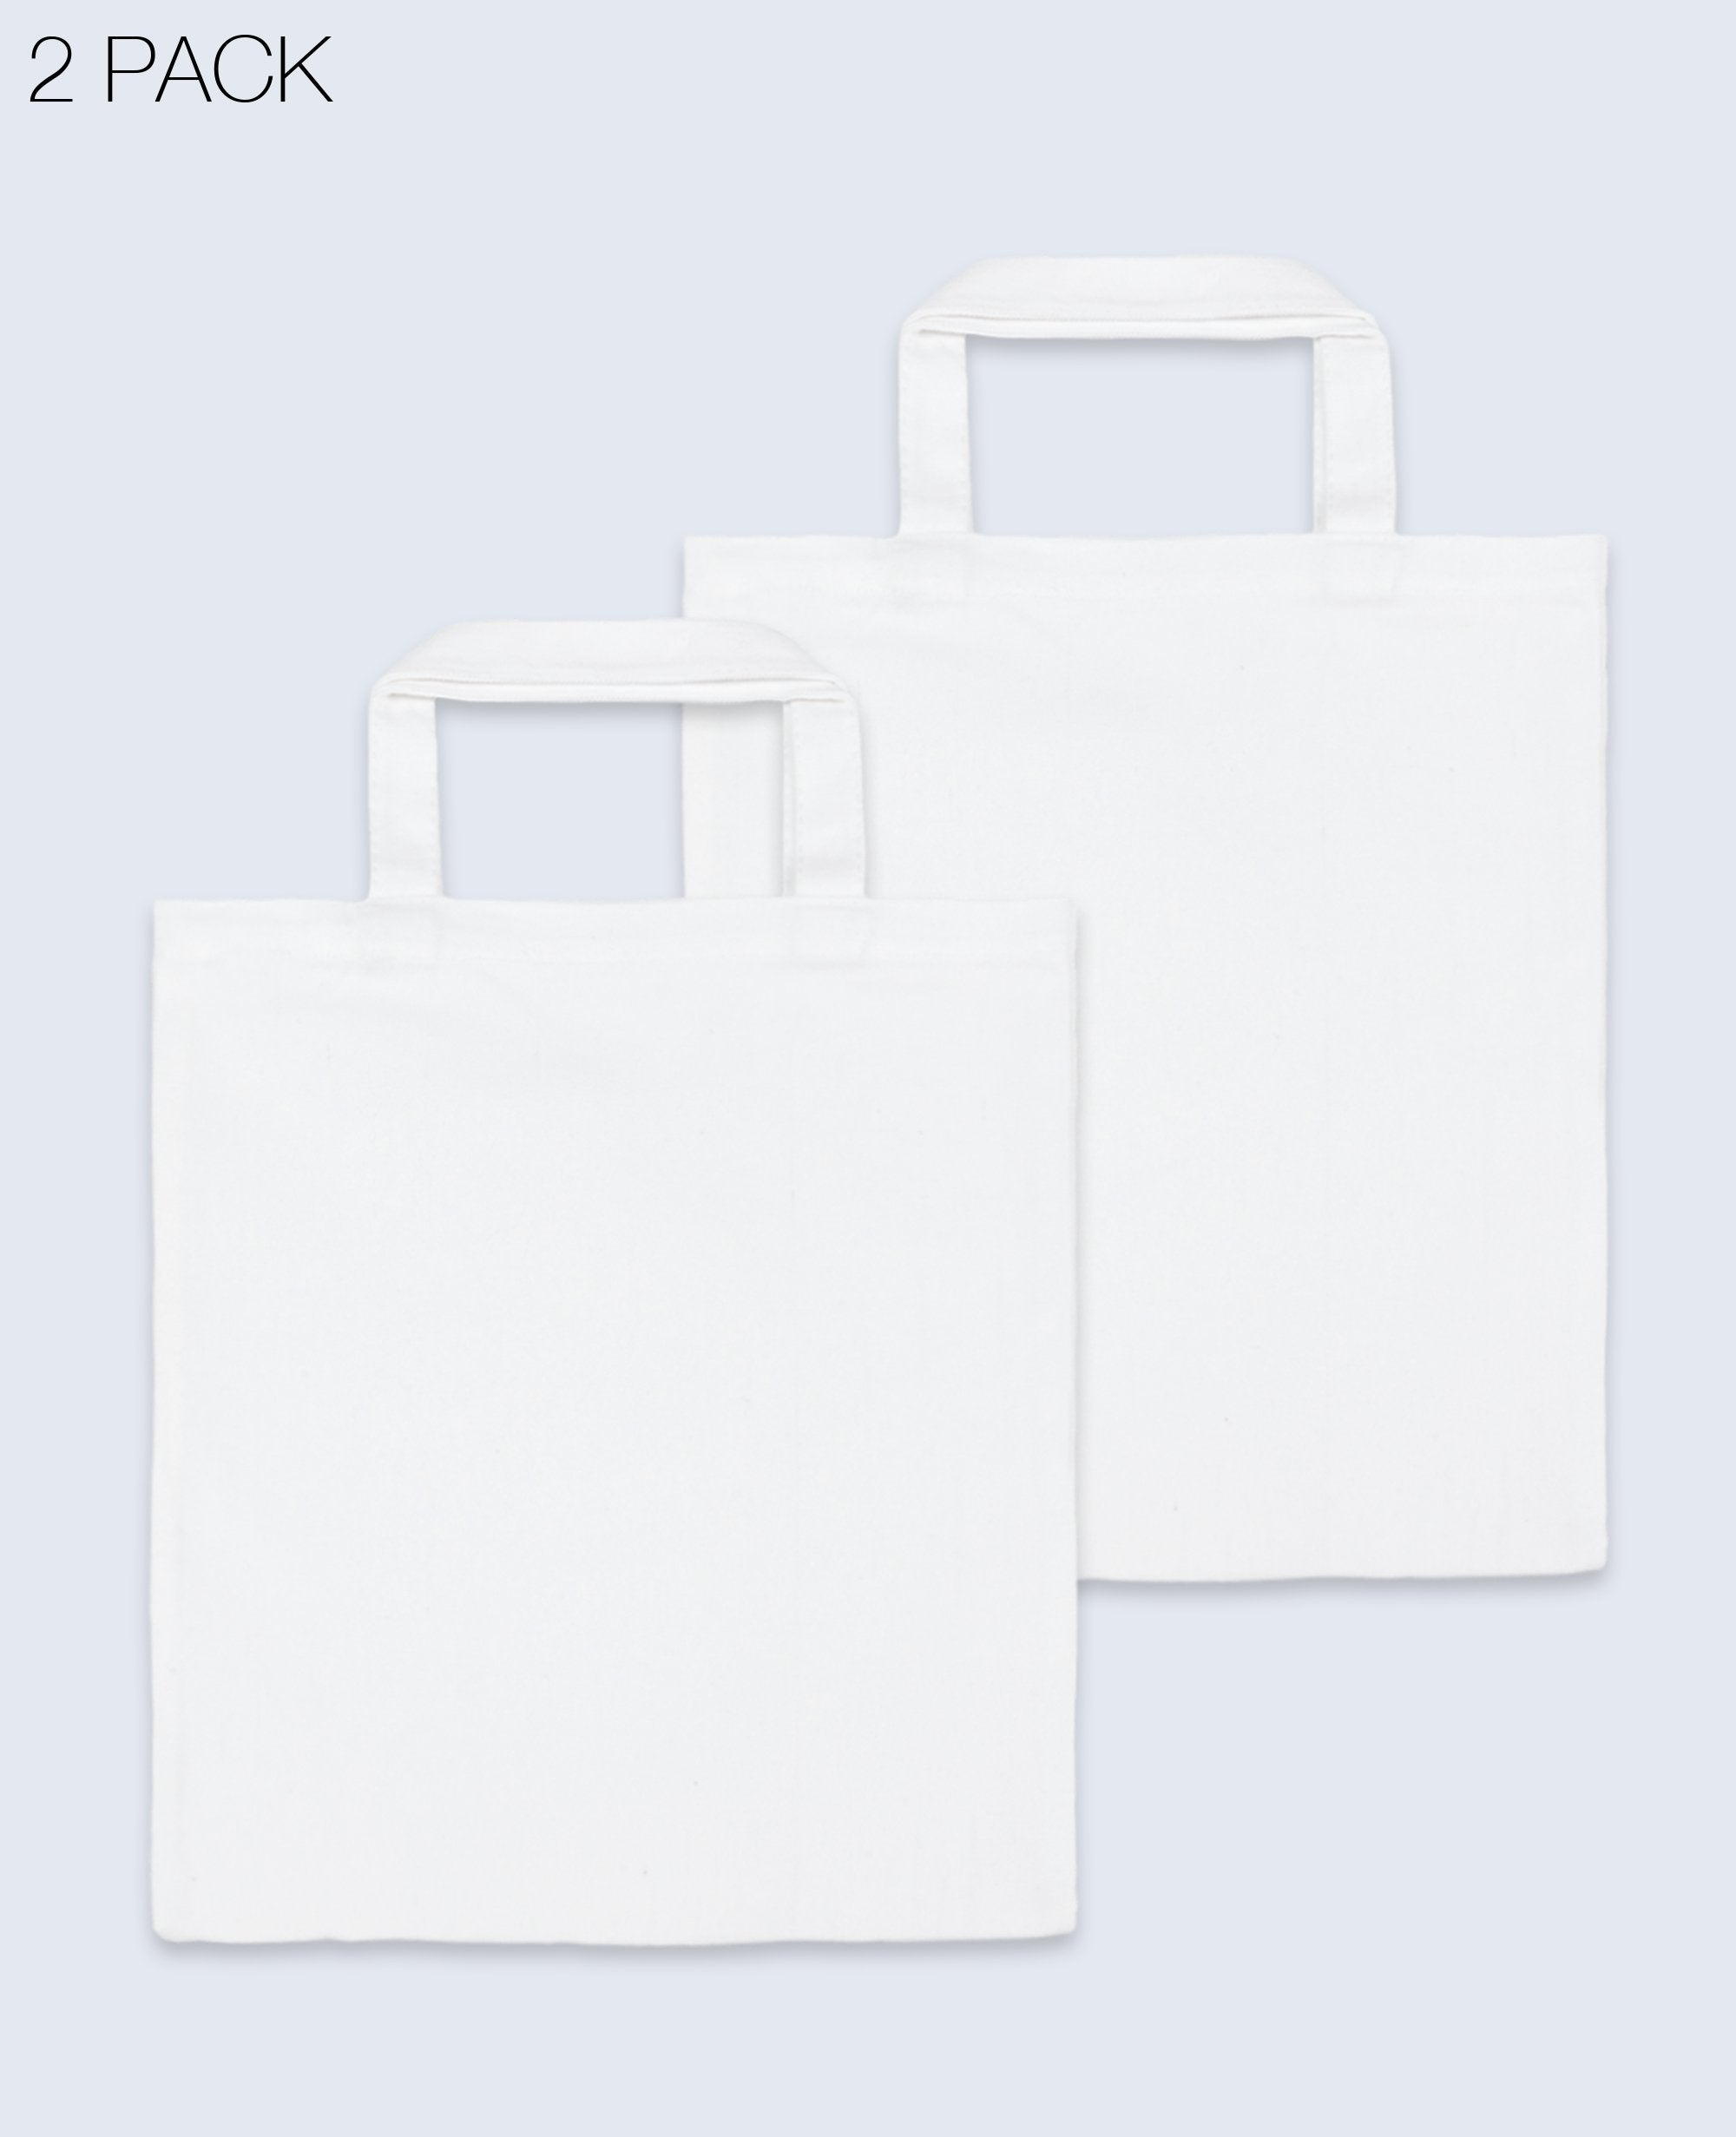 Short Handle Tote bag in White 2 pack - Tote bags - BRANMA - BRANMA